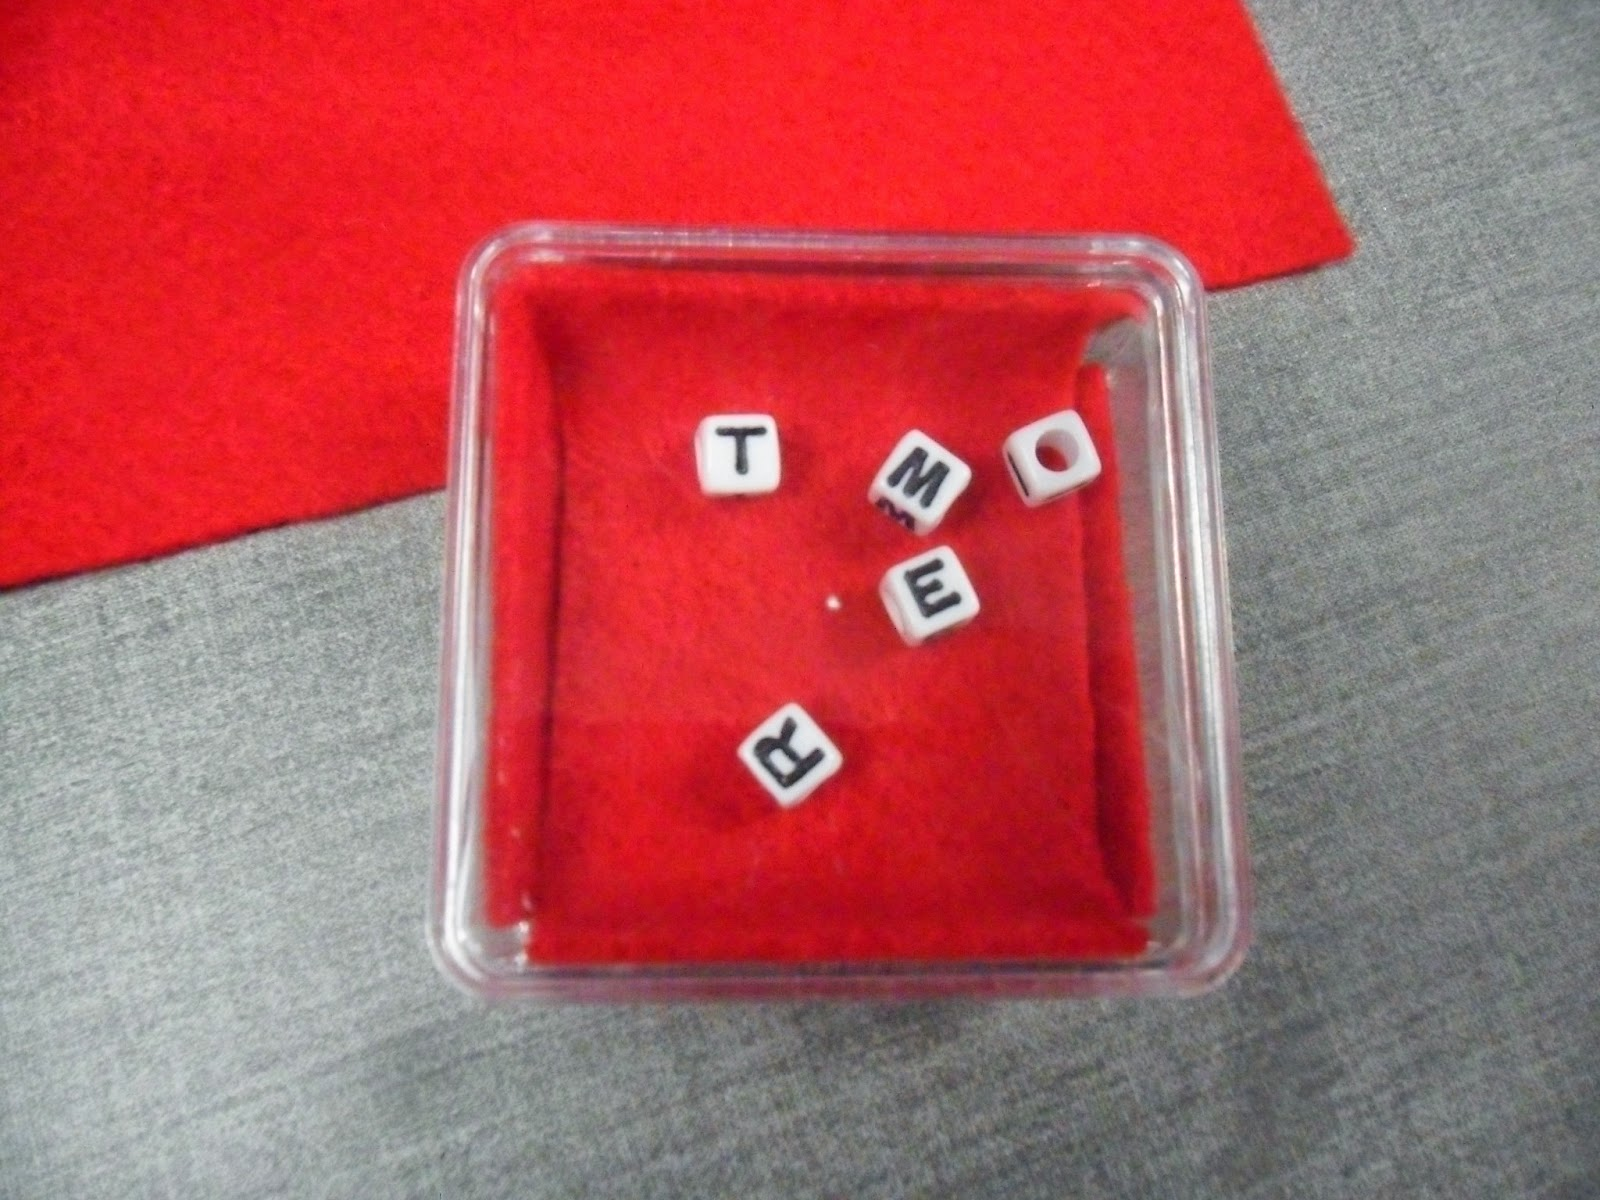 Like The Fidget Box Idea Best Need To Find A Way Make It Completely Quiet So I Can Use Myself During Long Meetings When Stay Alert